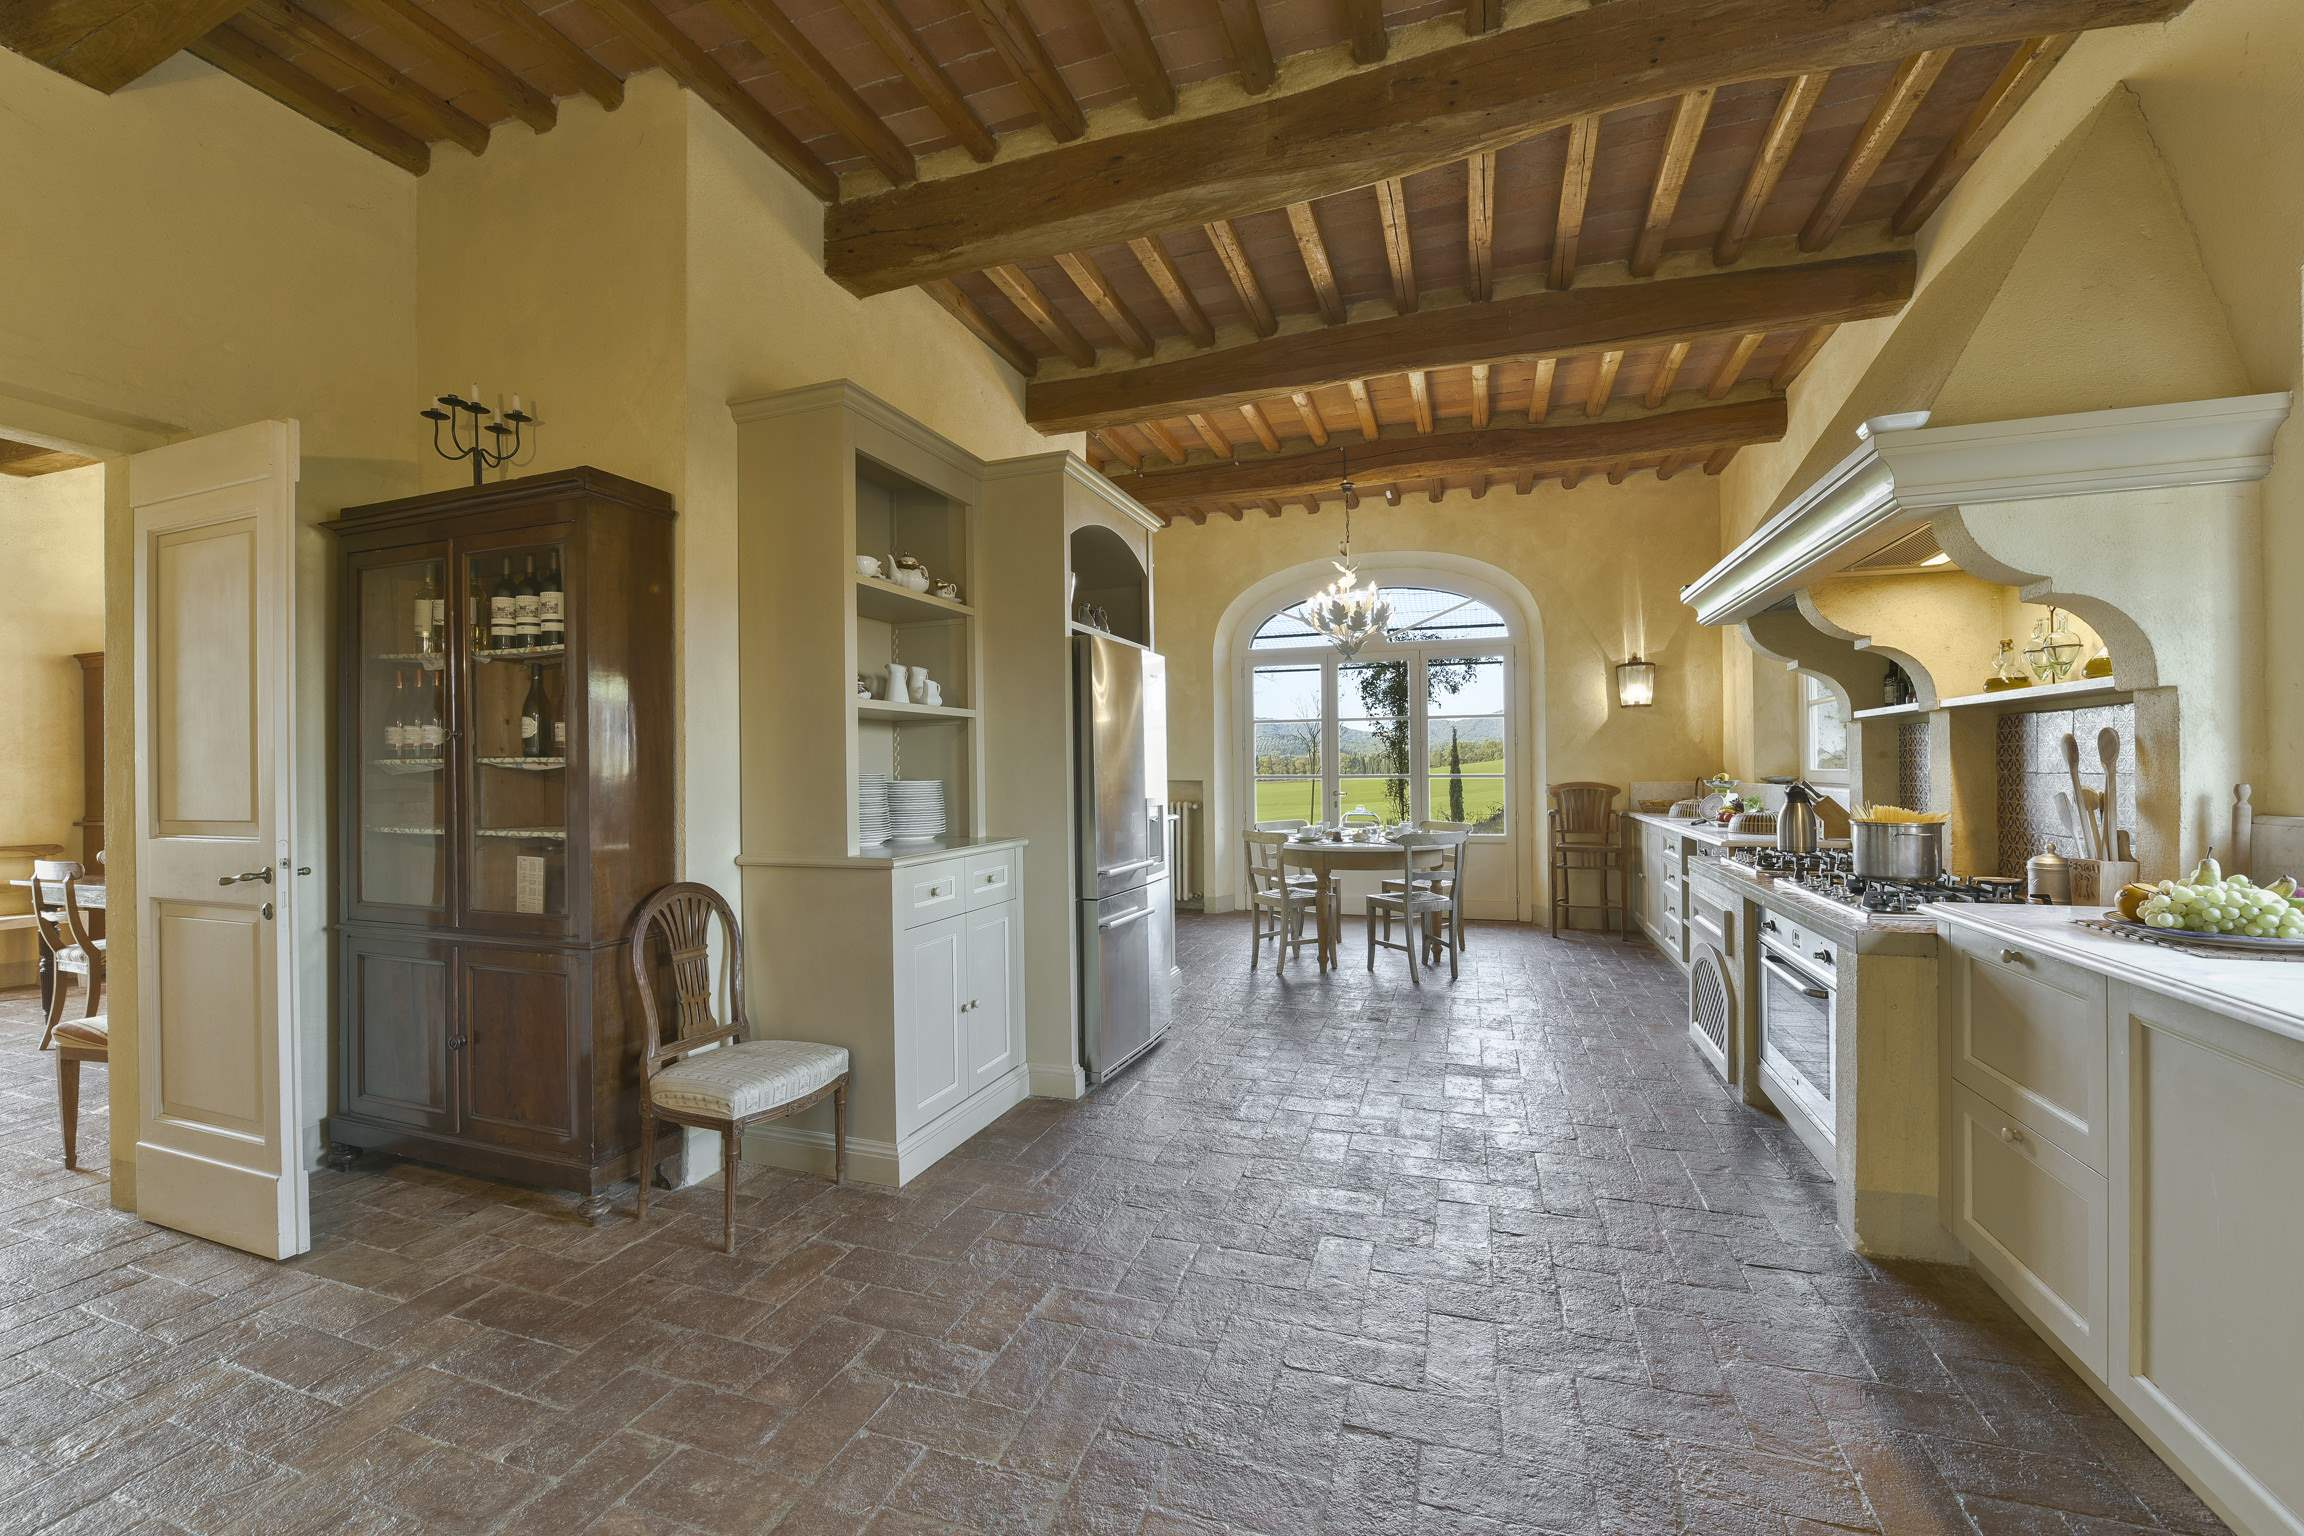 Villa Maremma 1, 7 bedroom villa in South Tuscany - Maremma, Tuscany Photo #12